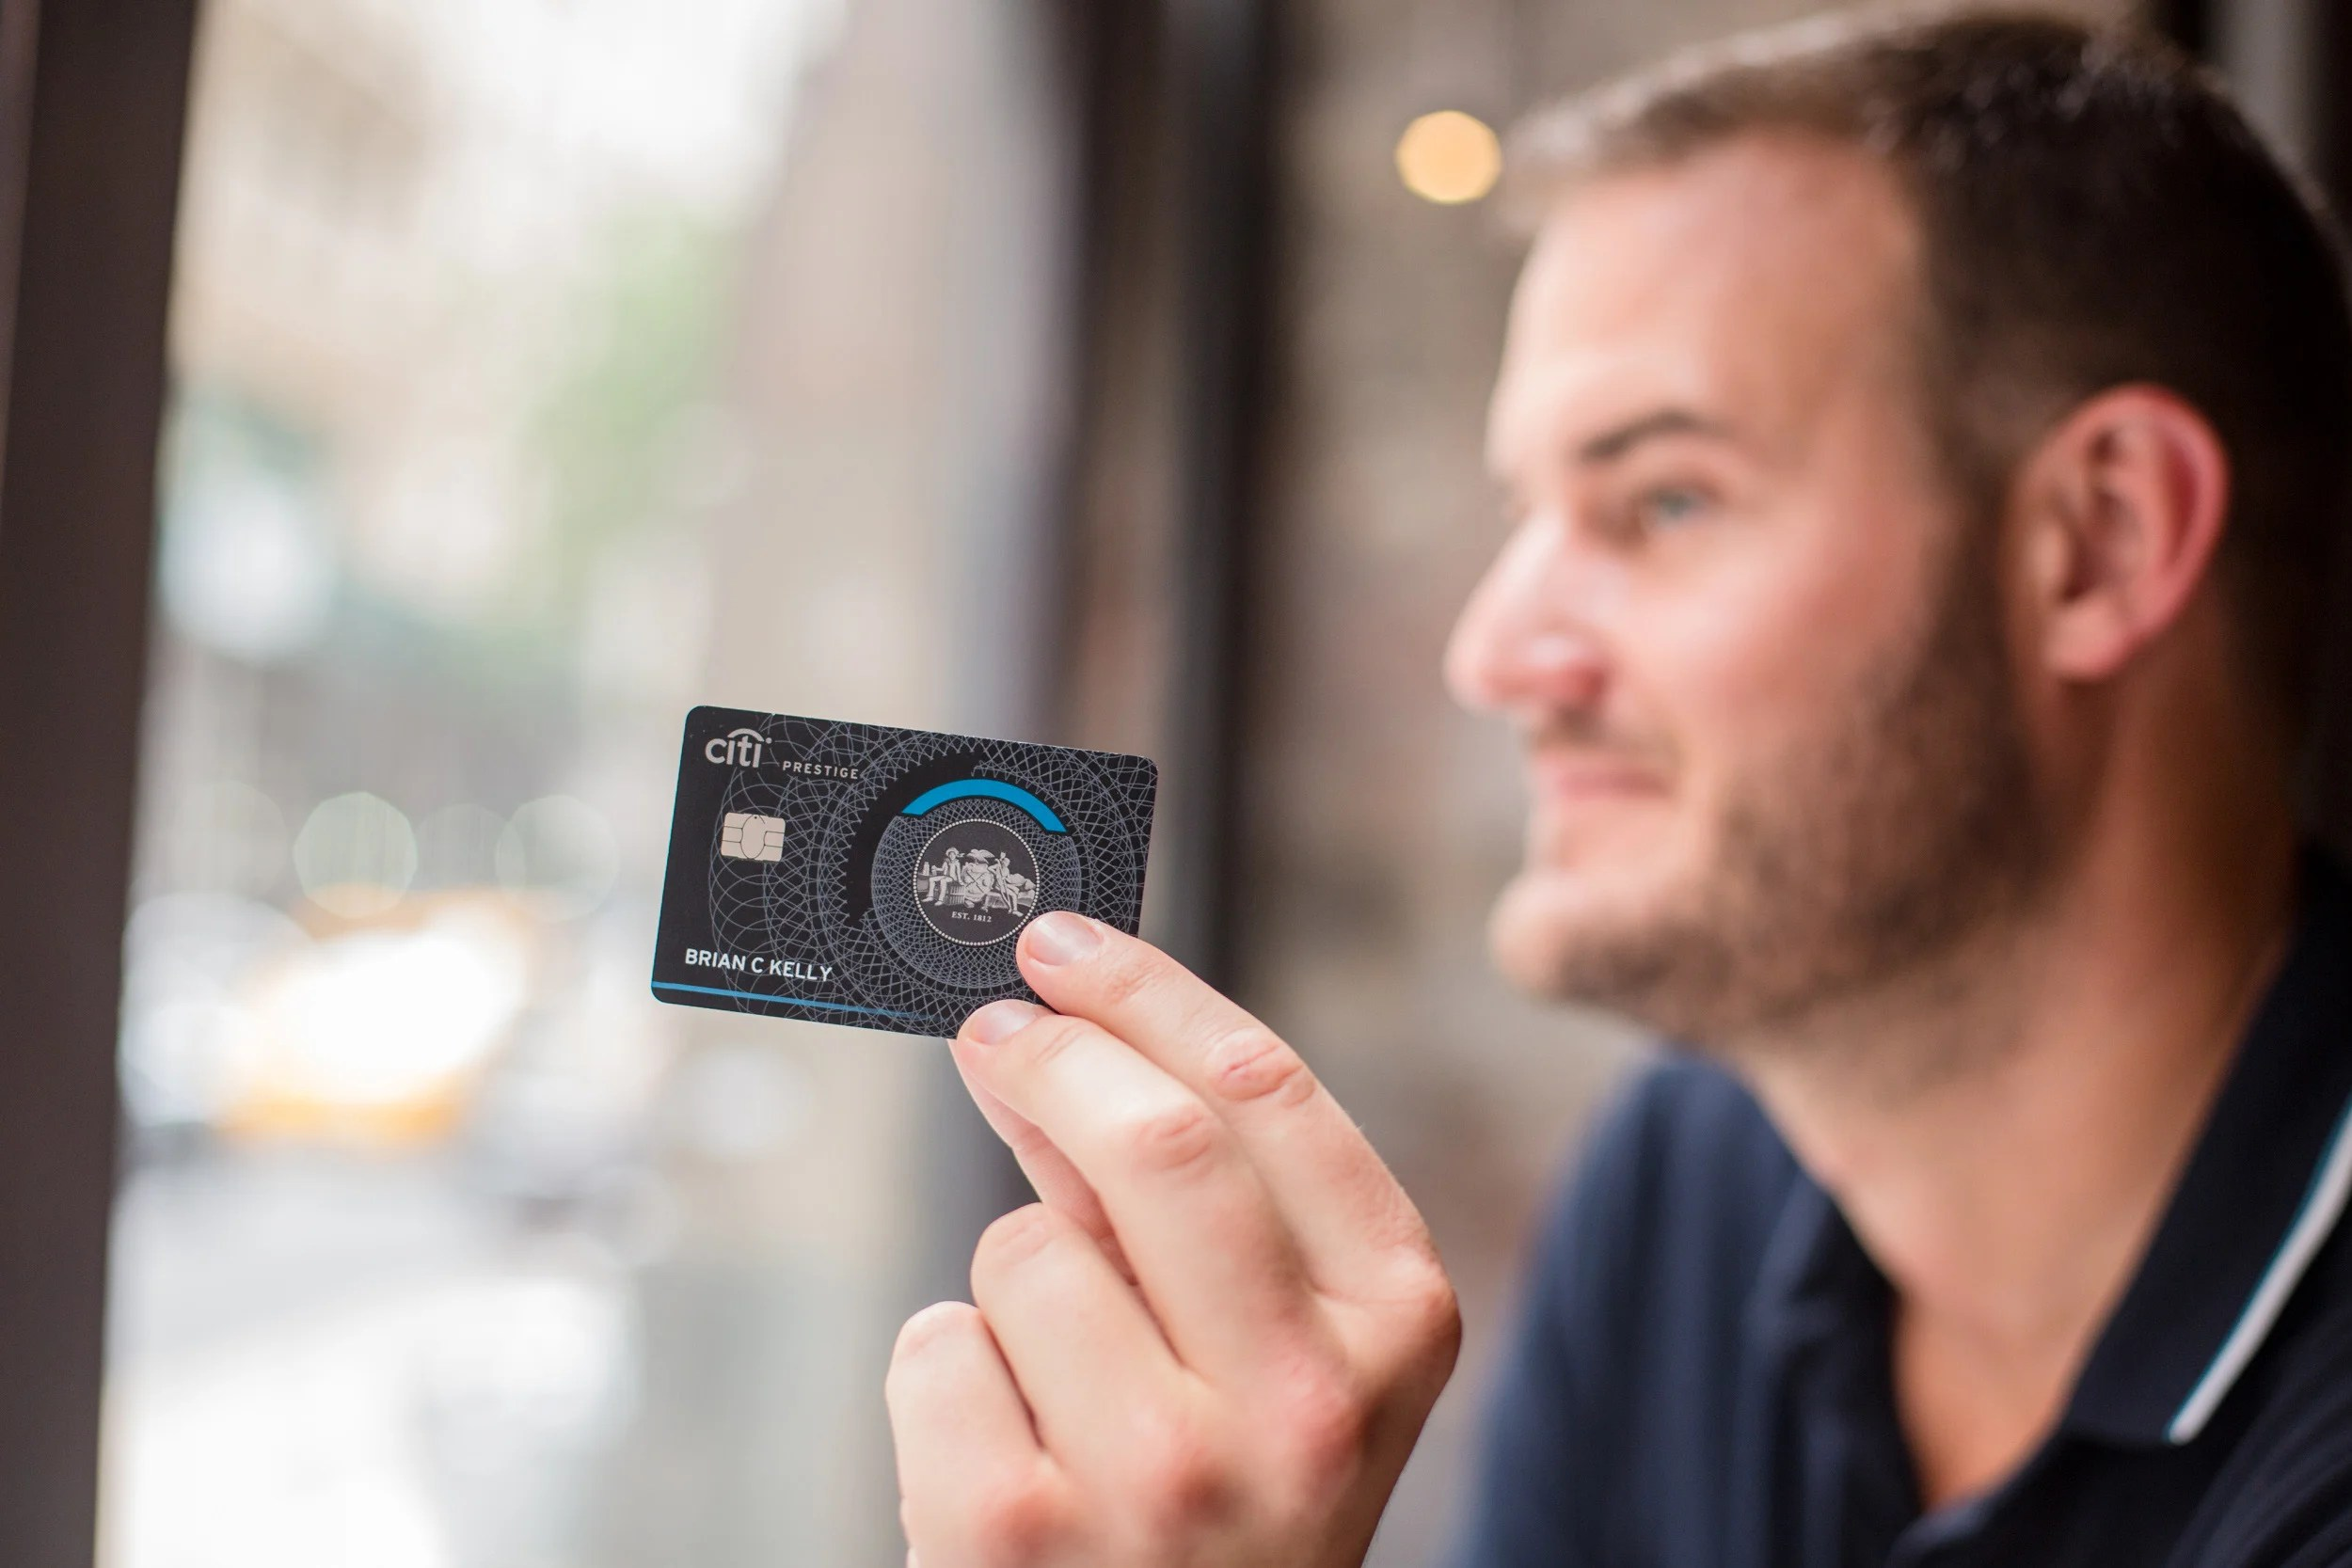 Credit Card Review: Is the Citi Prestige Worth It?